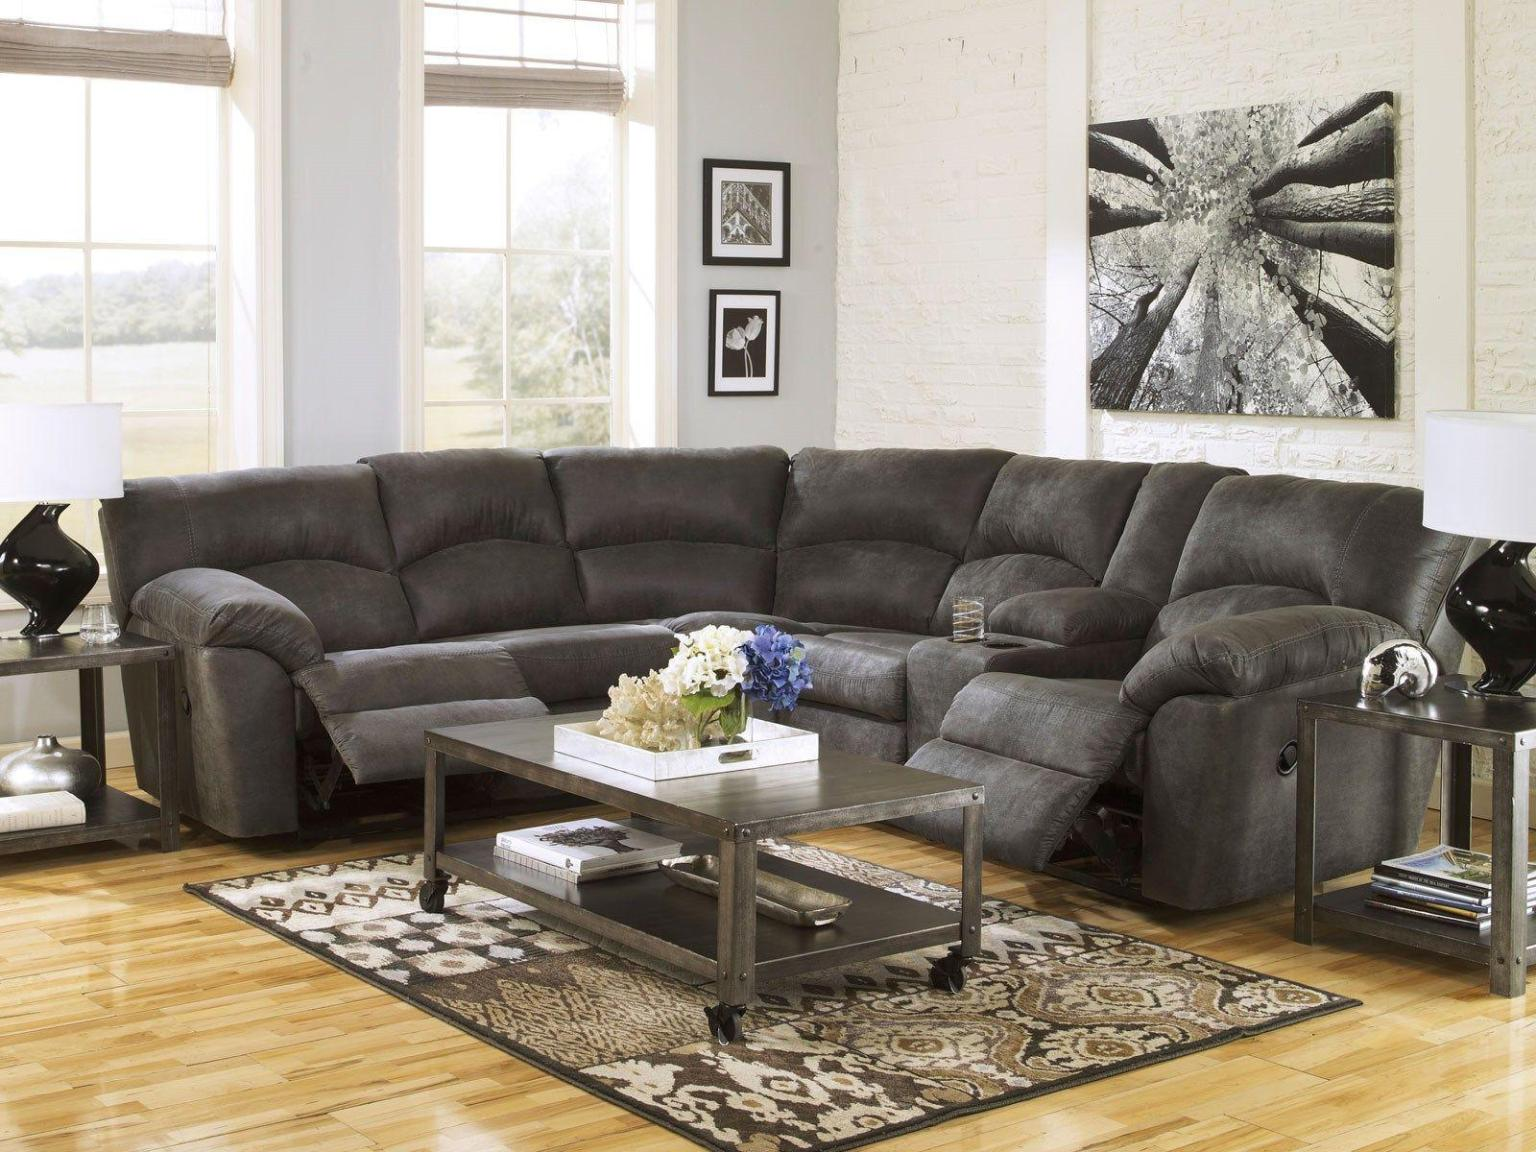 Image of: Sectional Sofas With Recliners For Small Spaces